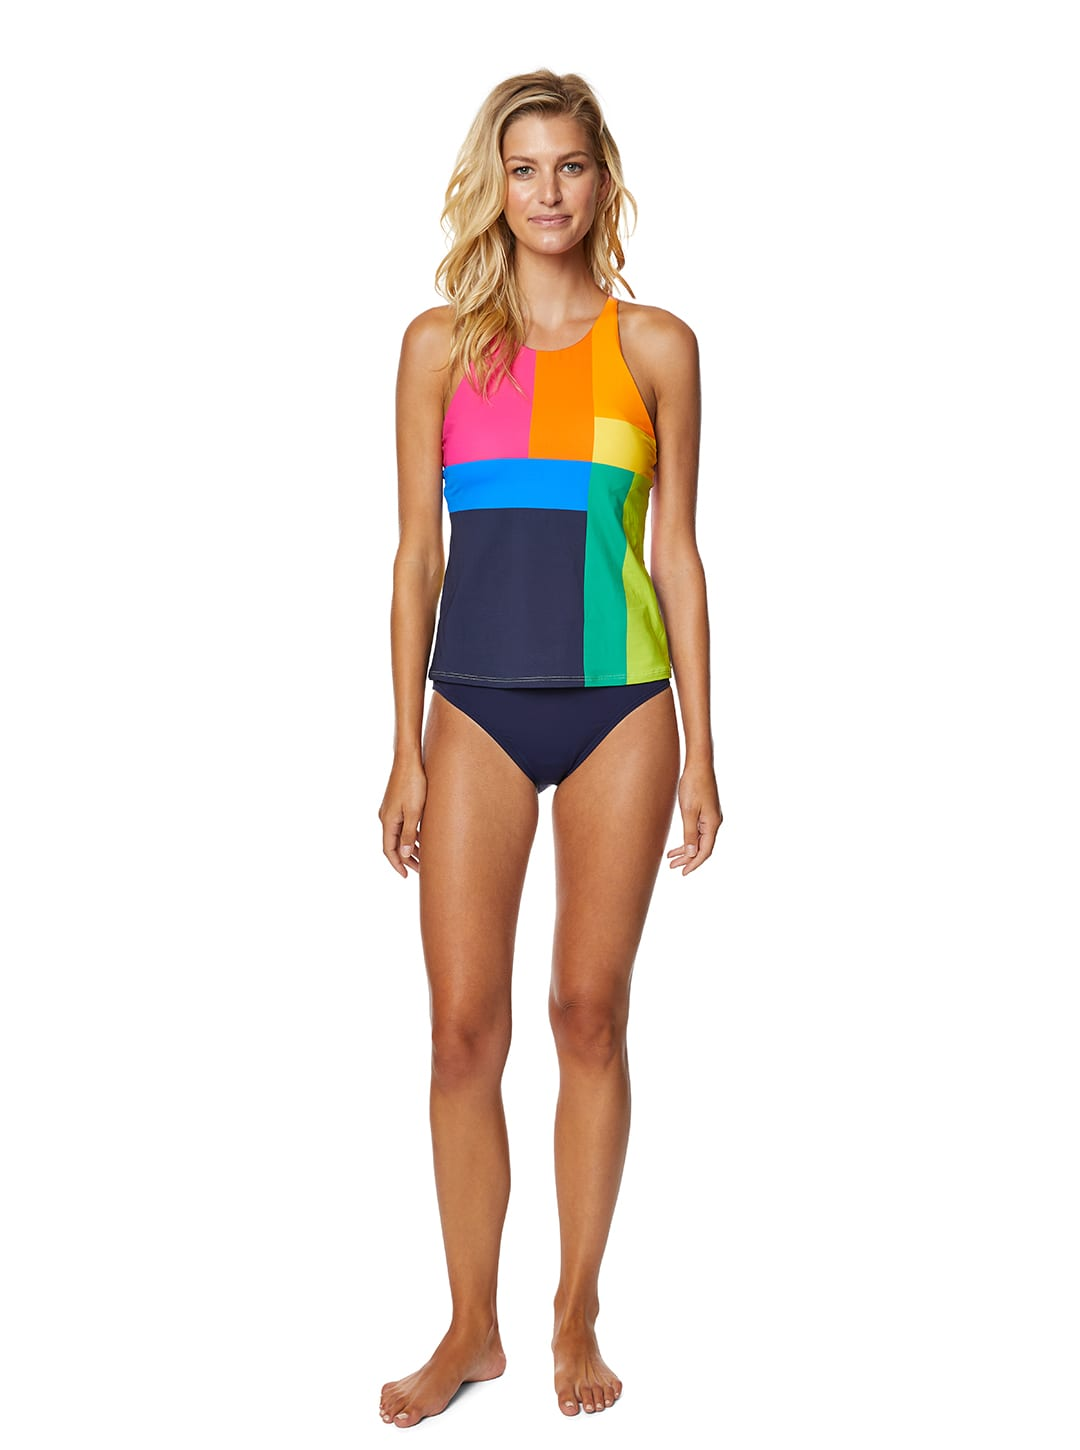 Nautica® Lighthouse High Neck Tankini Swimsuit Top - Multi - Front